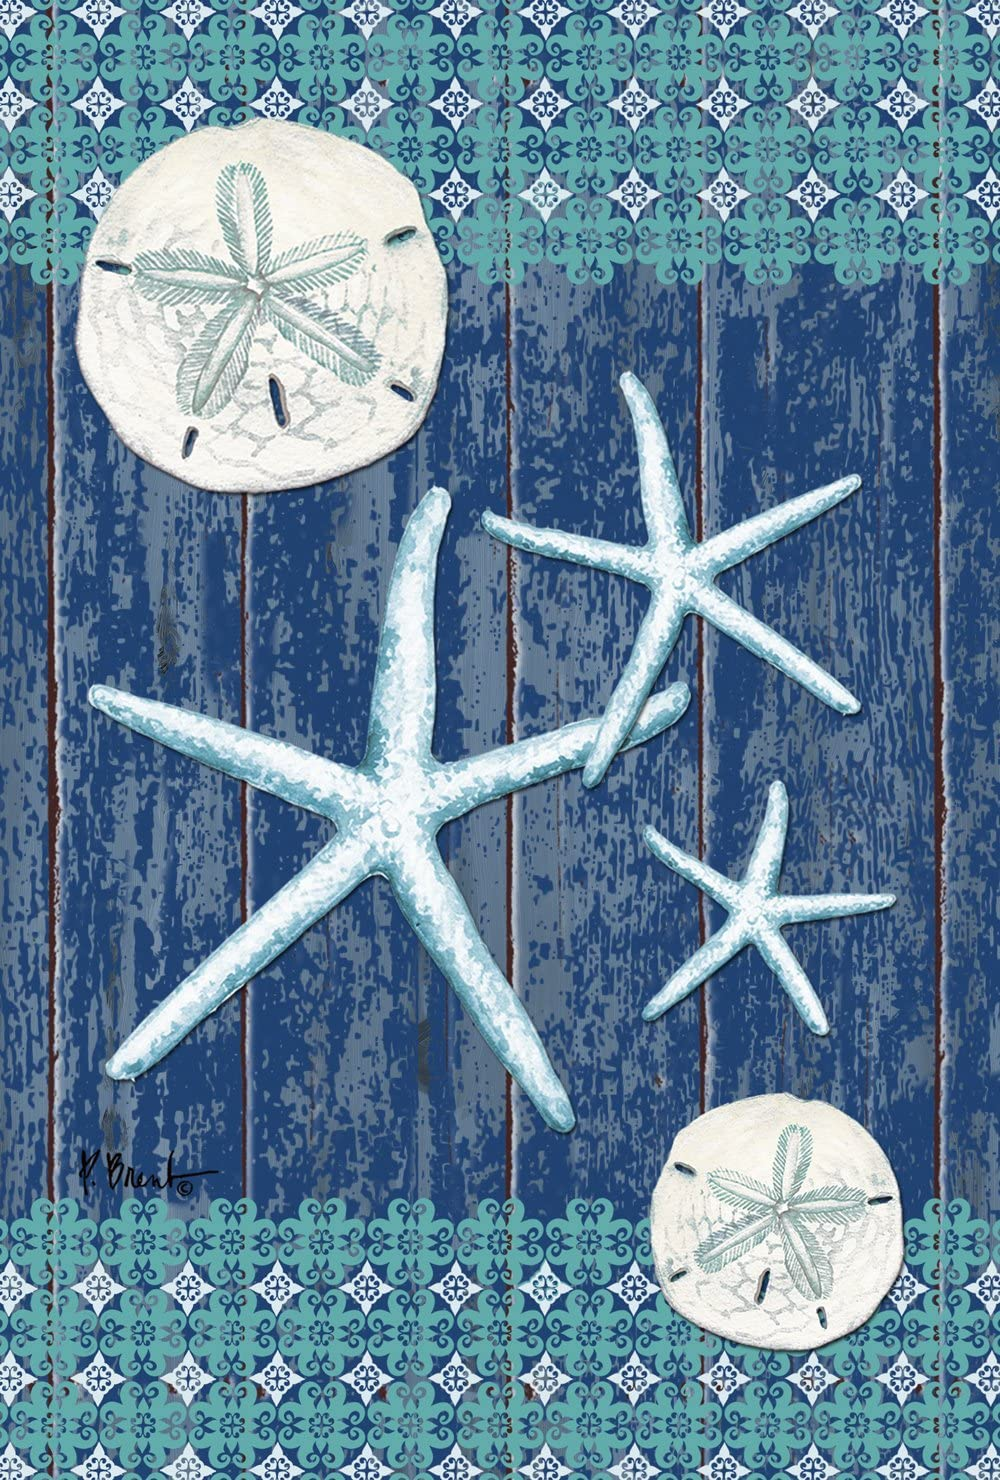 Toland Home Garden Sand Dollars and Sea Stars 12.5 x 18 Inch Decorative Rustic Beach Shell Garden Flag